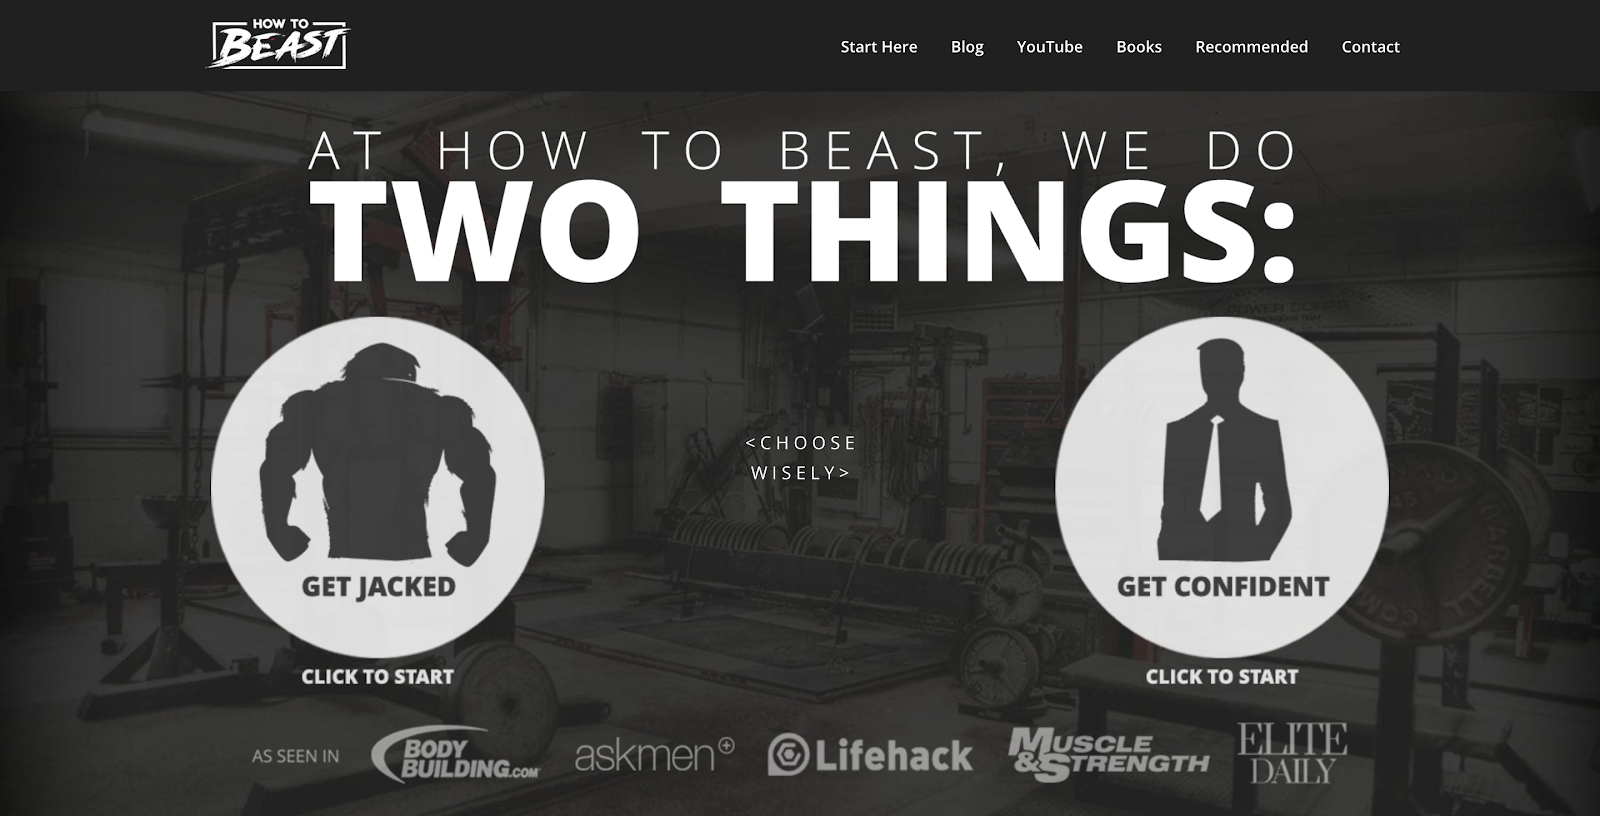 How to Beast blog interface